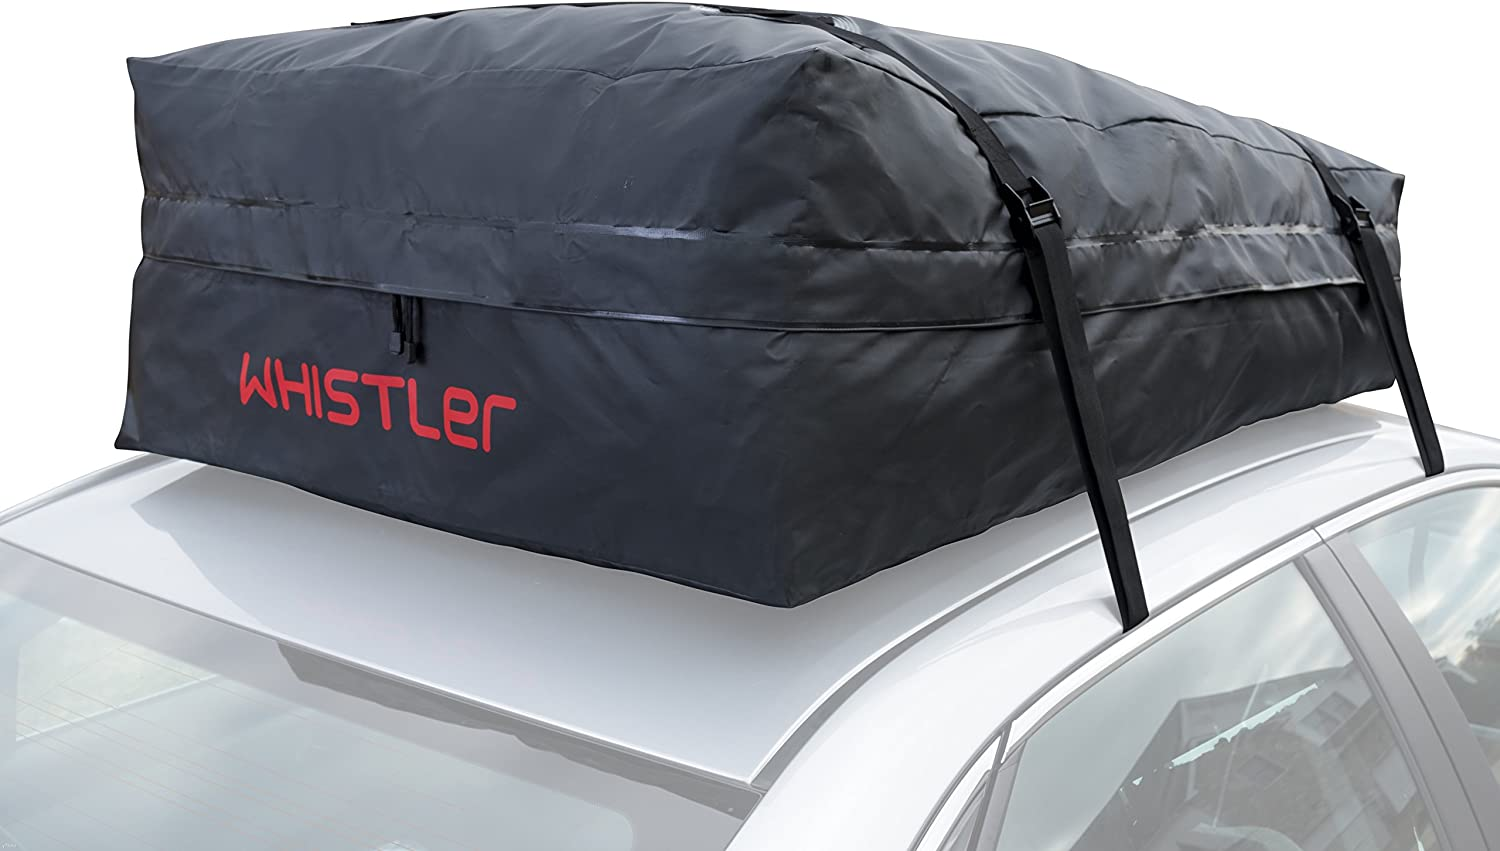 Whistler Hitch Bag + Storage Bag 20 Cu Ft 100/% Waterproof Large Hitch Tray Cargo Carrier Bag 59 x 24 x 24